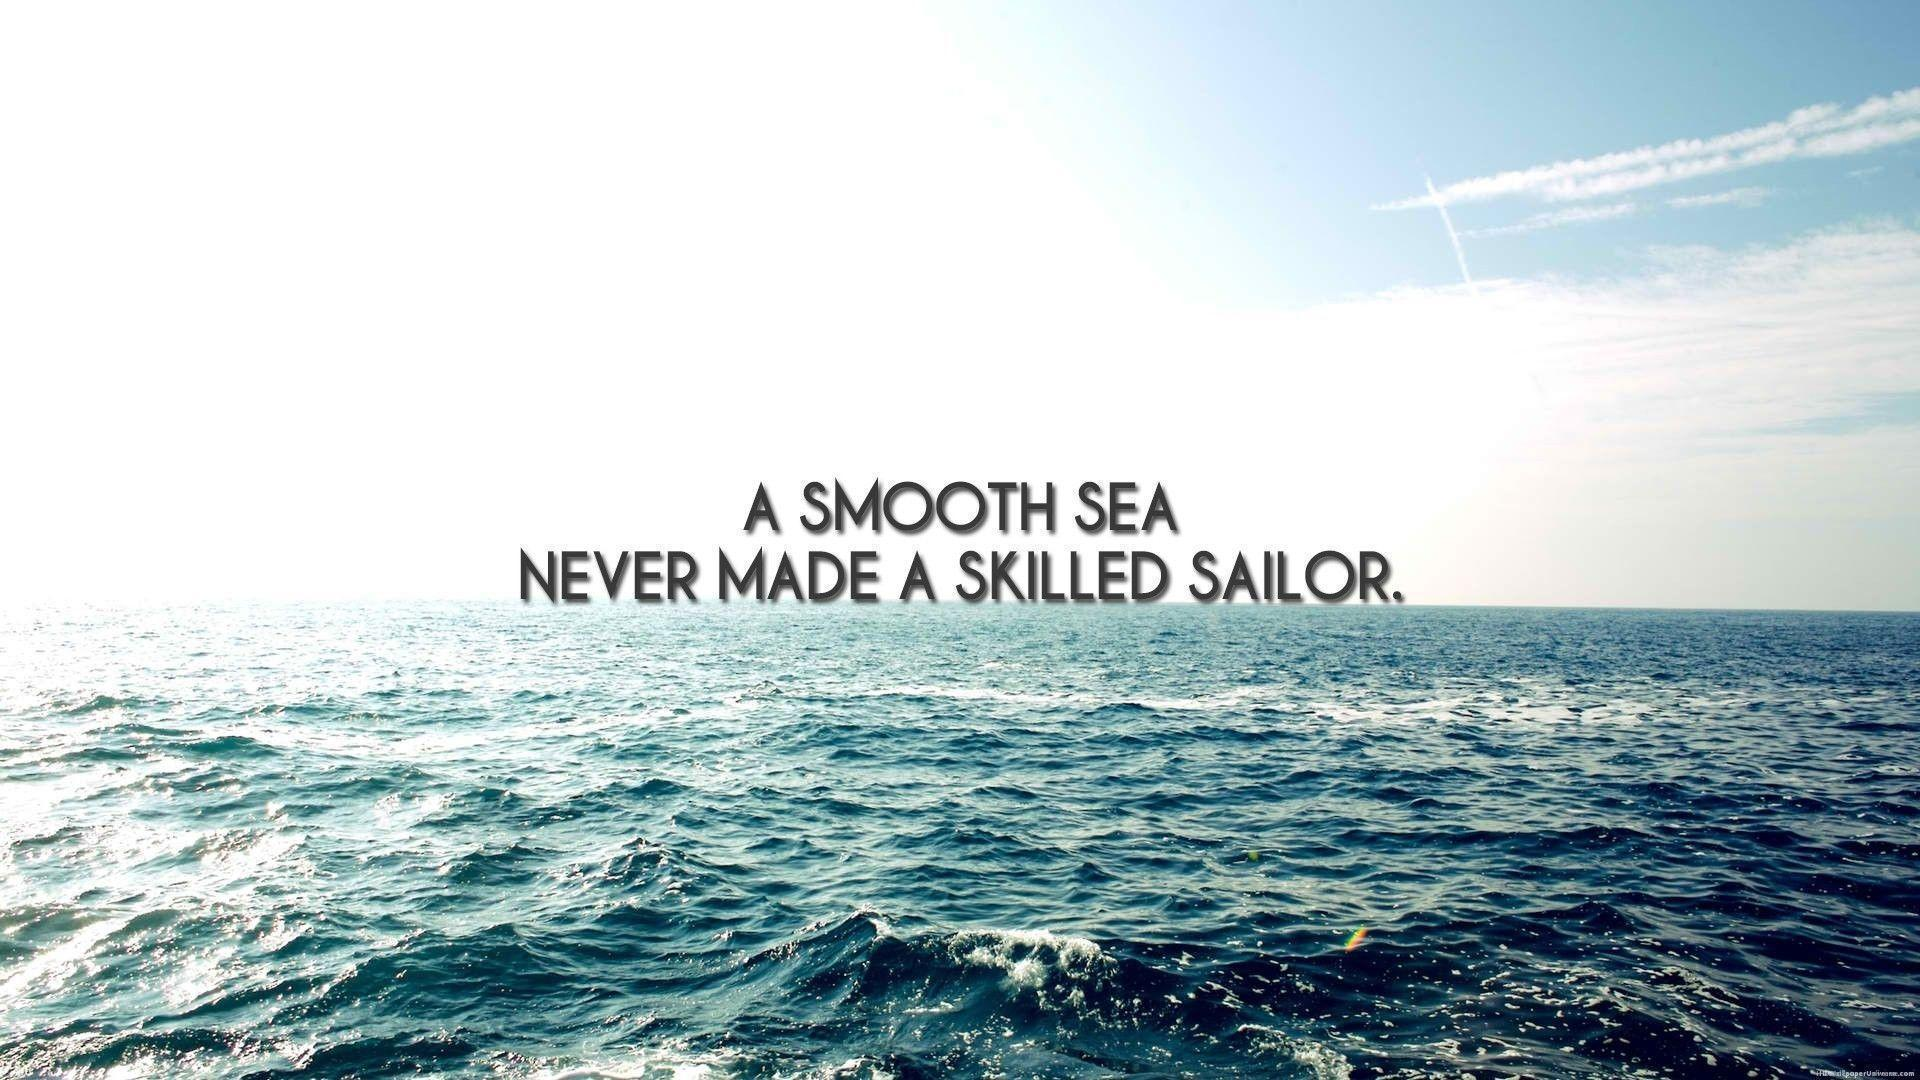 Sailor at sea inspirational quote HD Wallpaper, Desktop Backgrounds